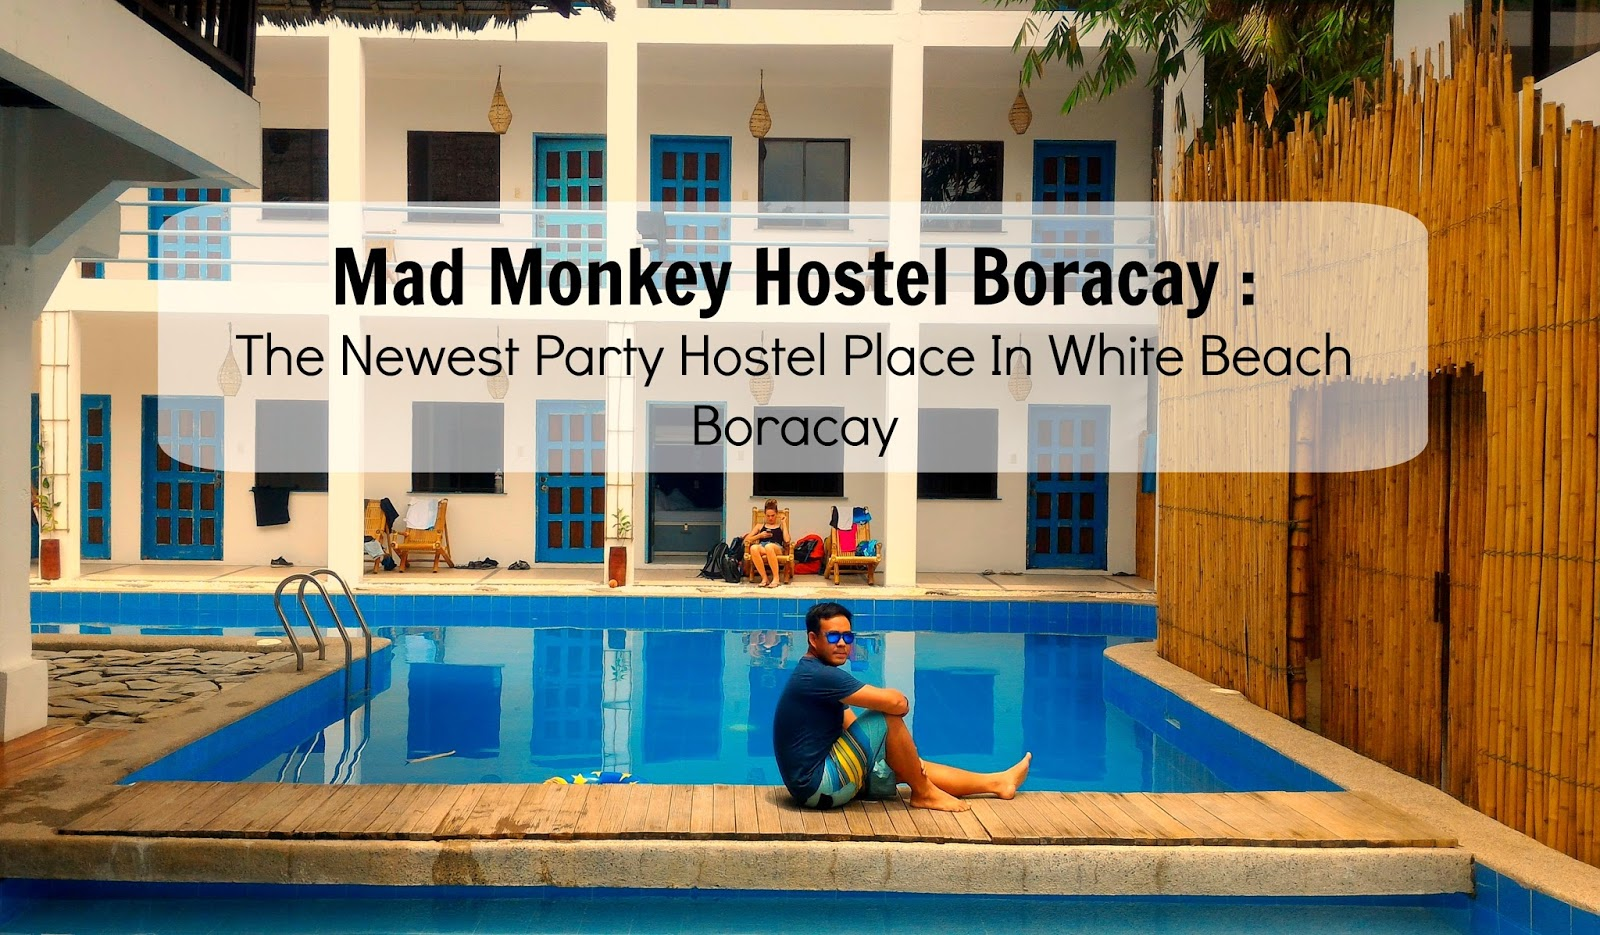 Mad Monkey Hostel